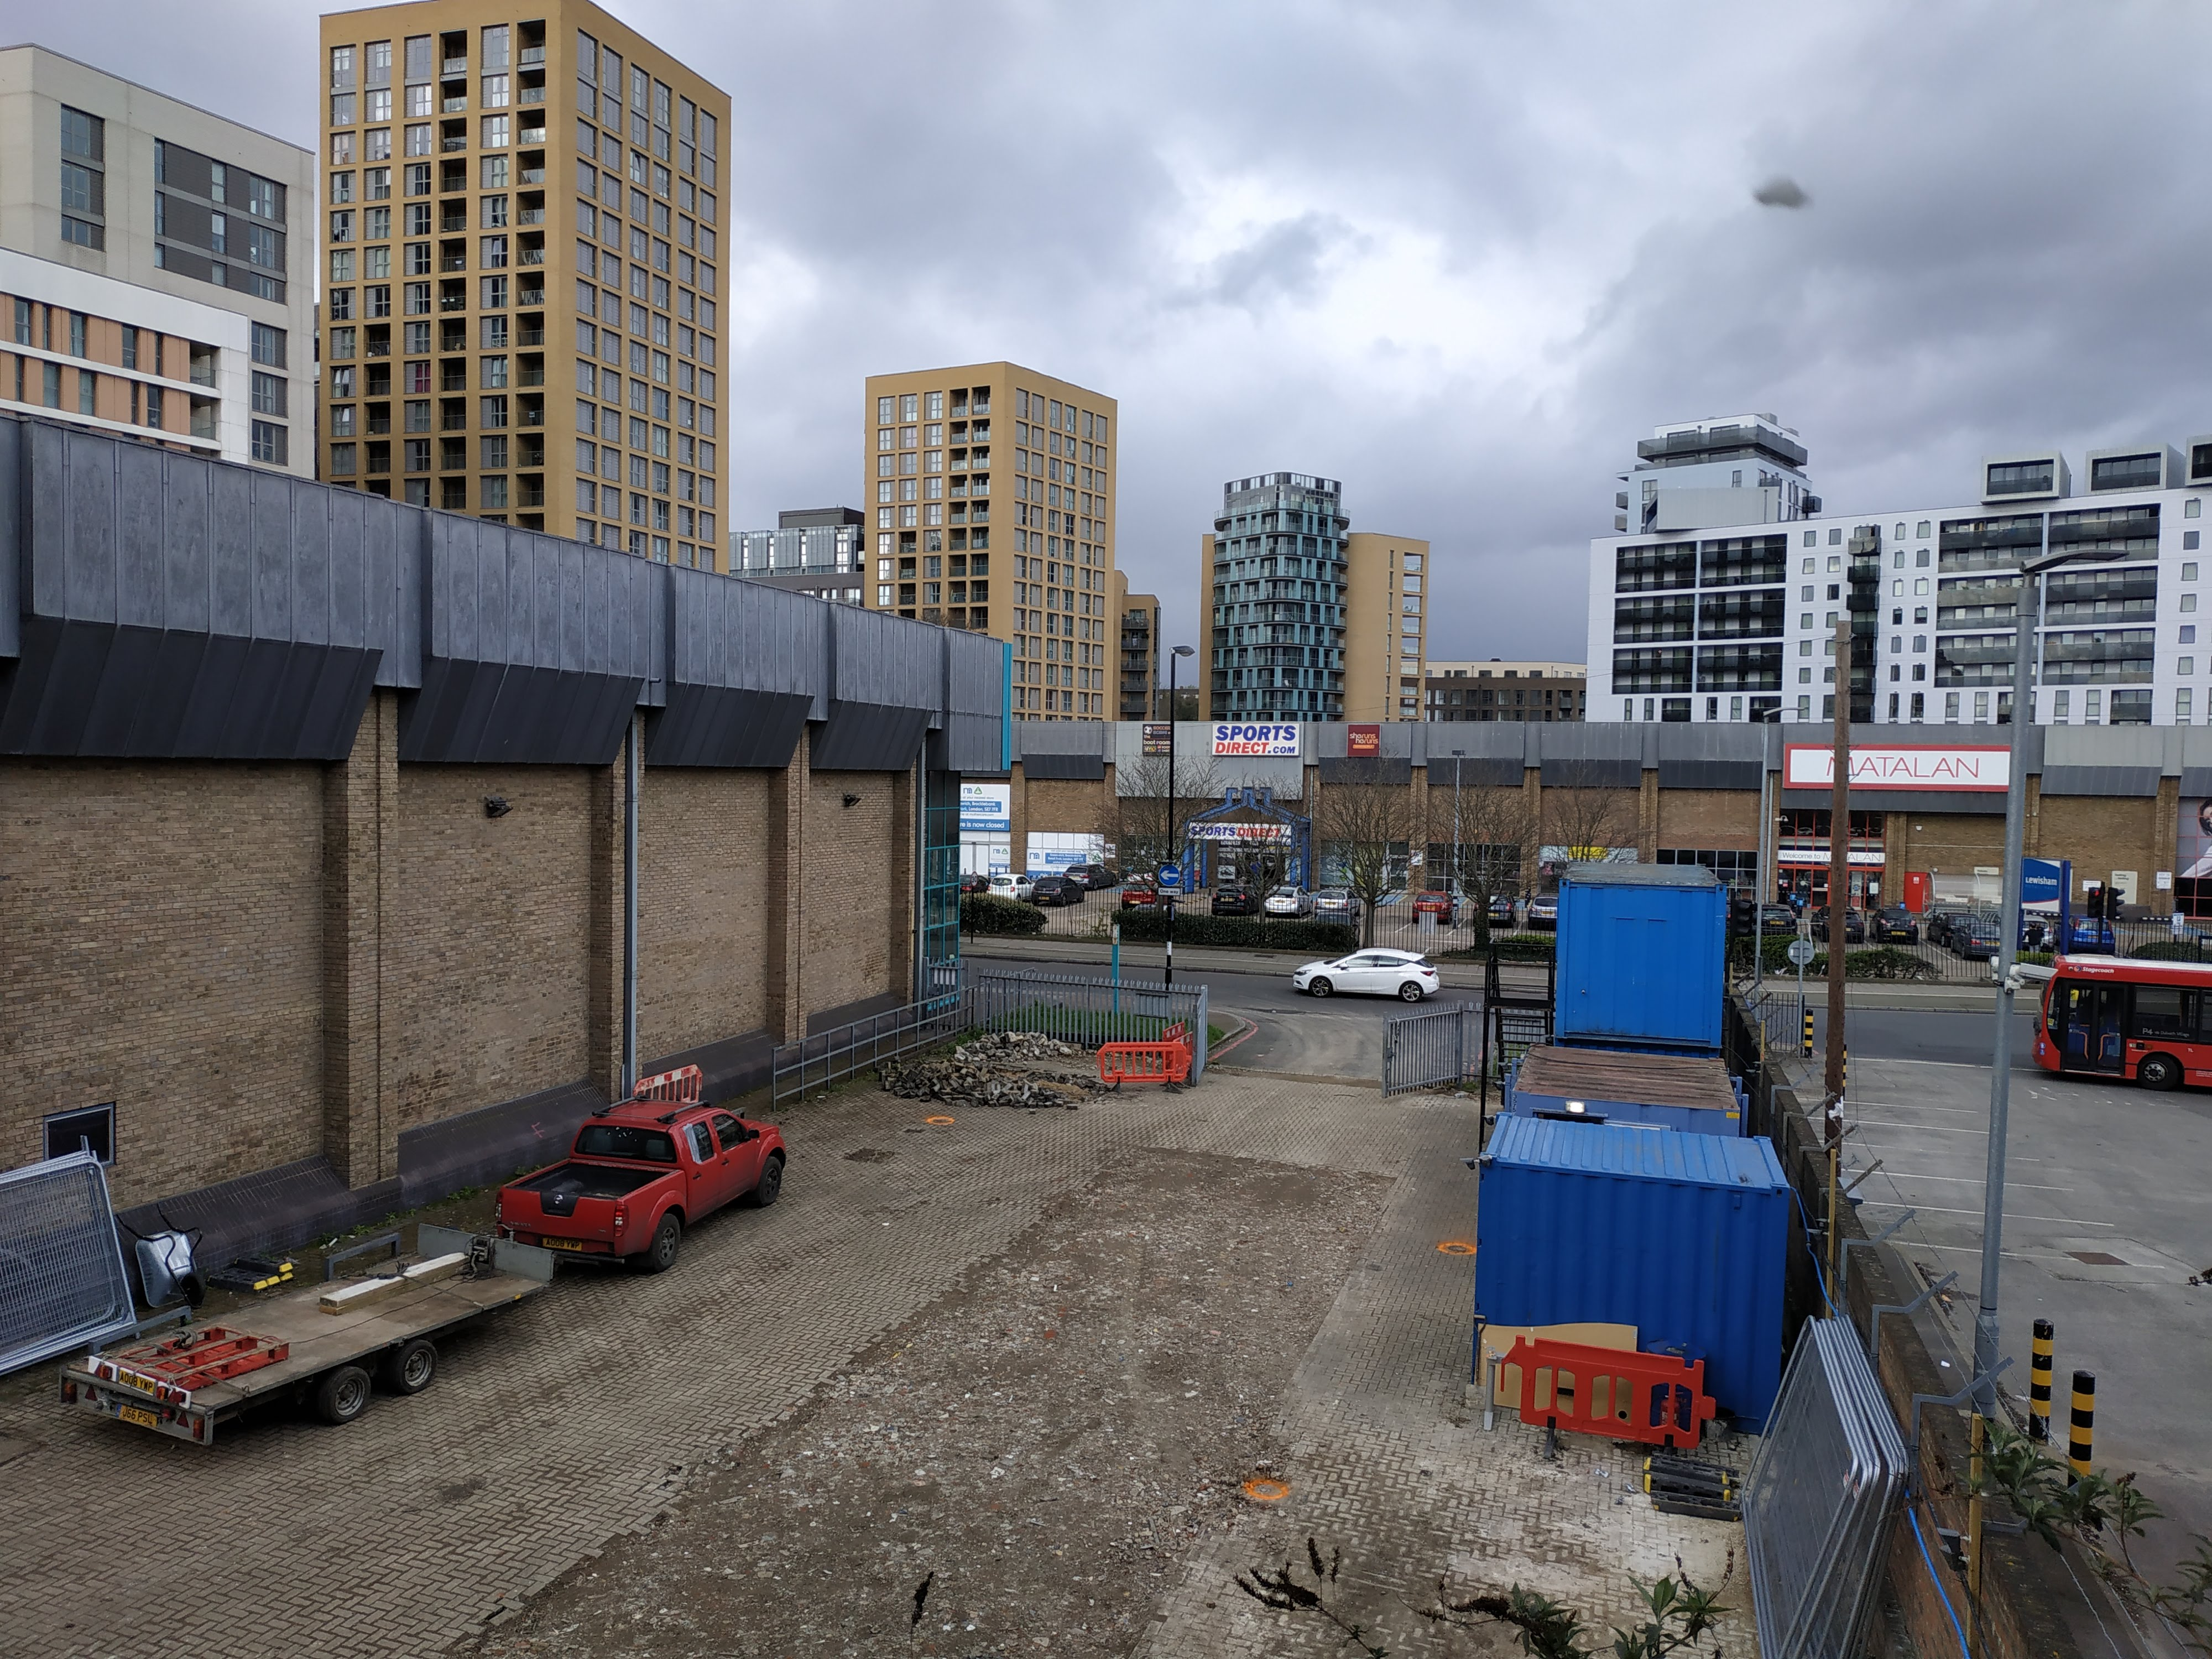 Lewisham New Station Entrance And Taller Tower Coming Demolition Of Carpetright Begins Murky Depths